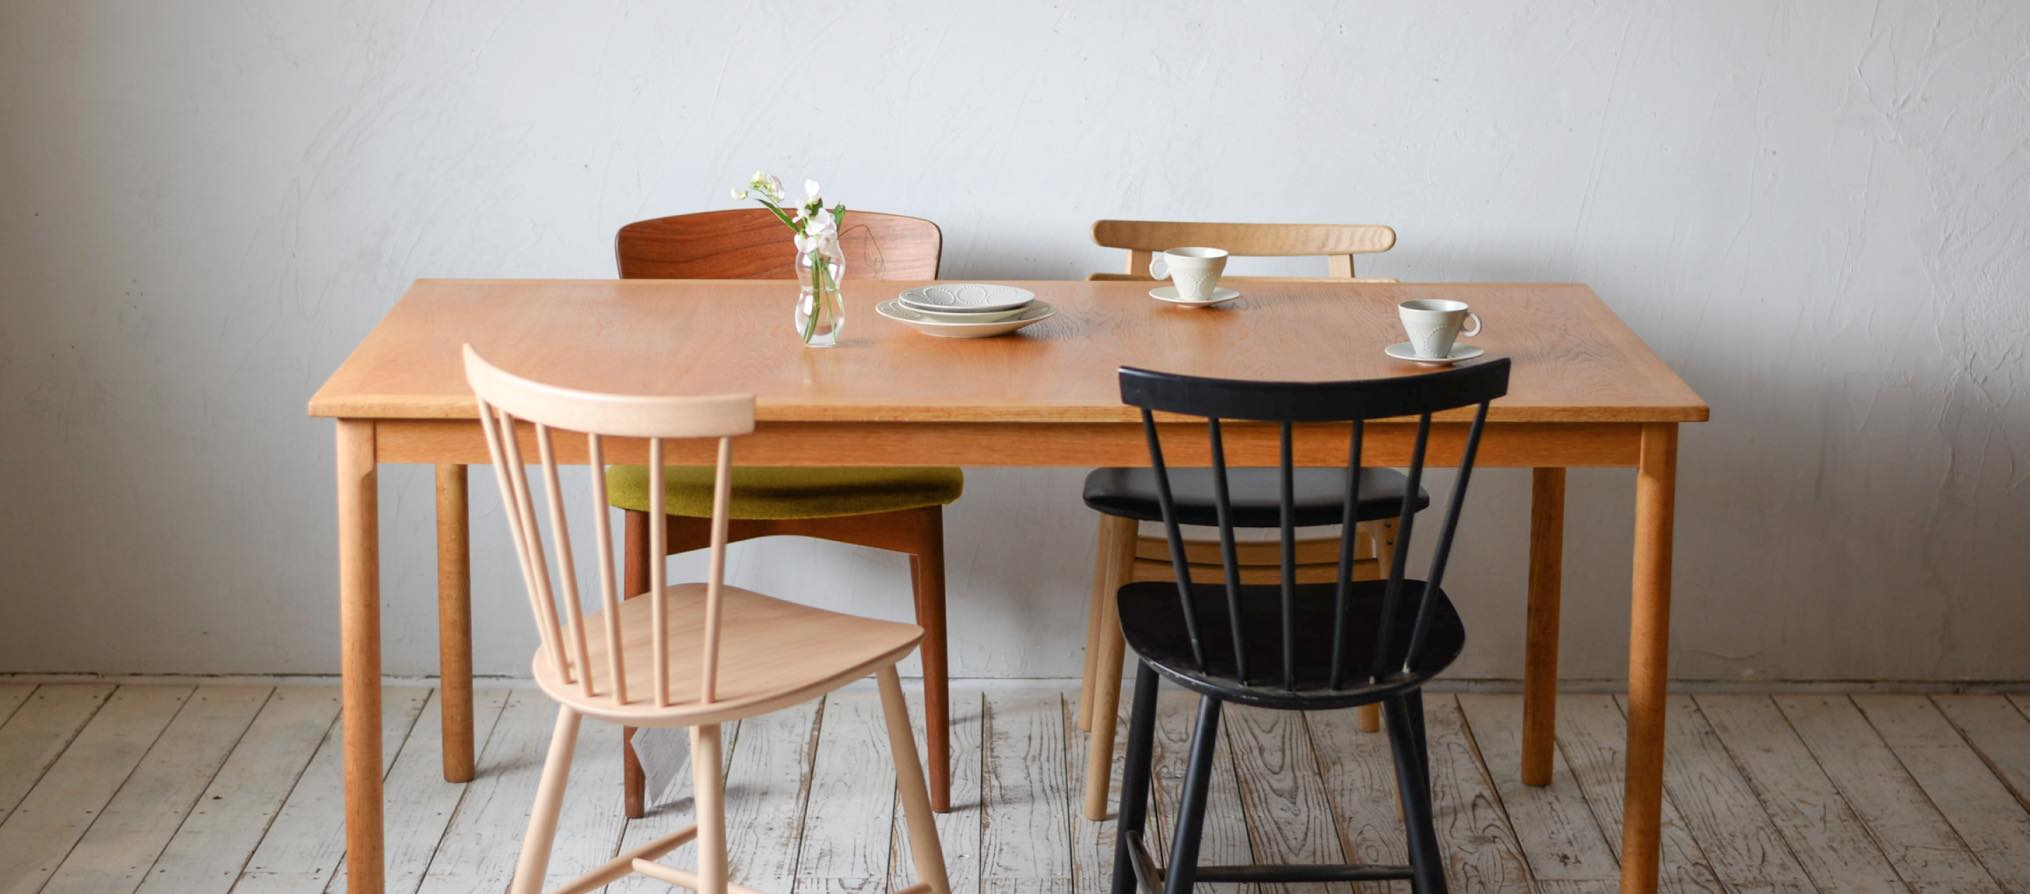 Dining Table 805D001_デザイン